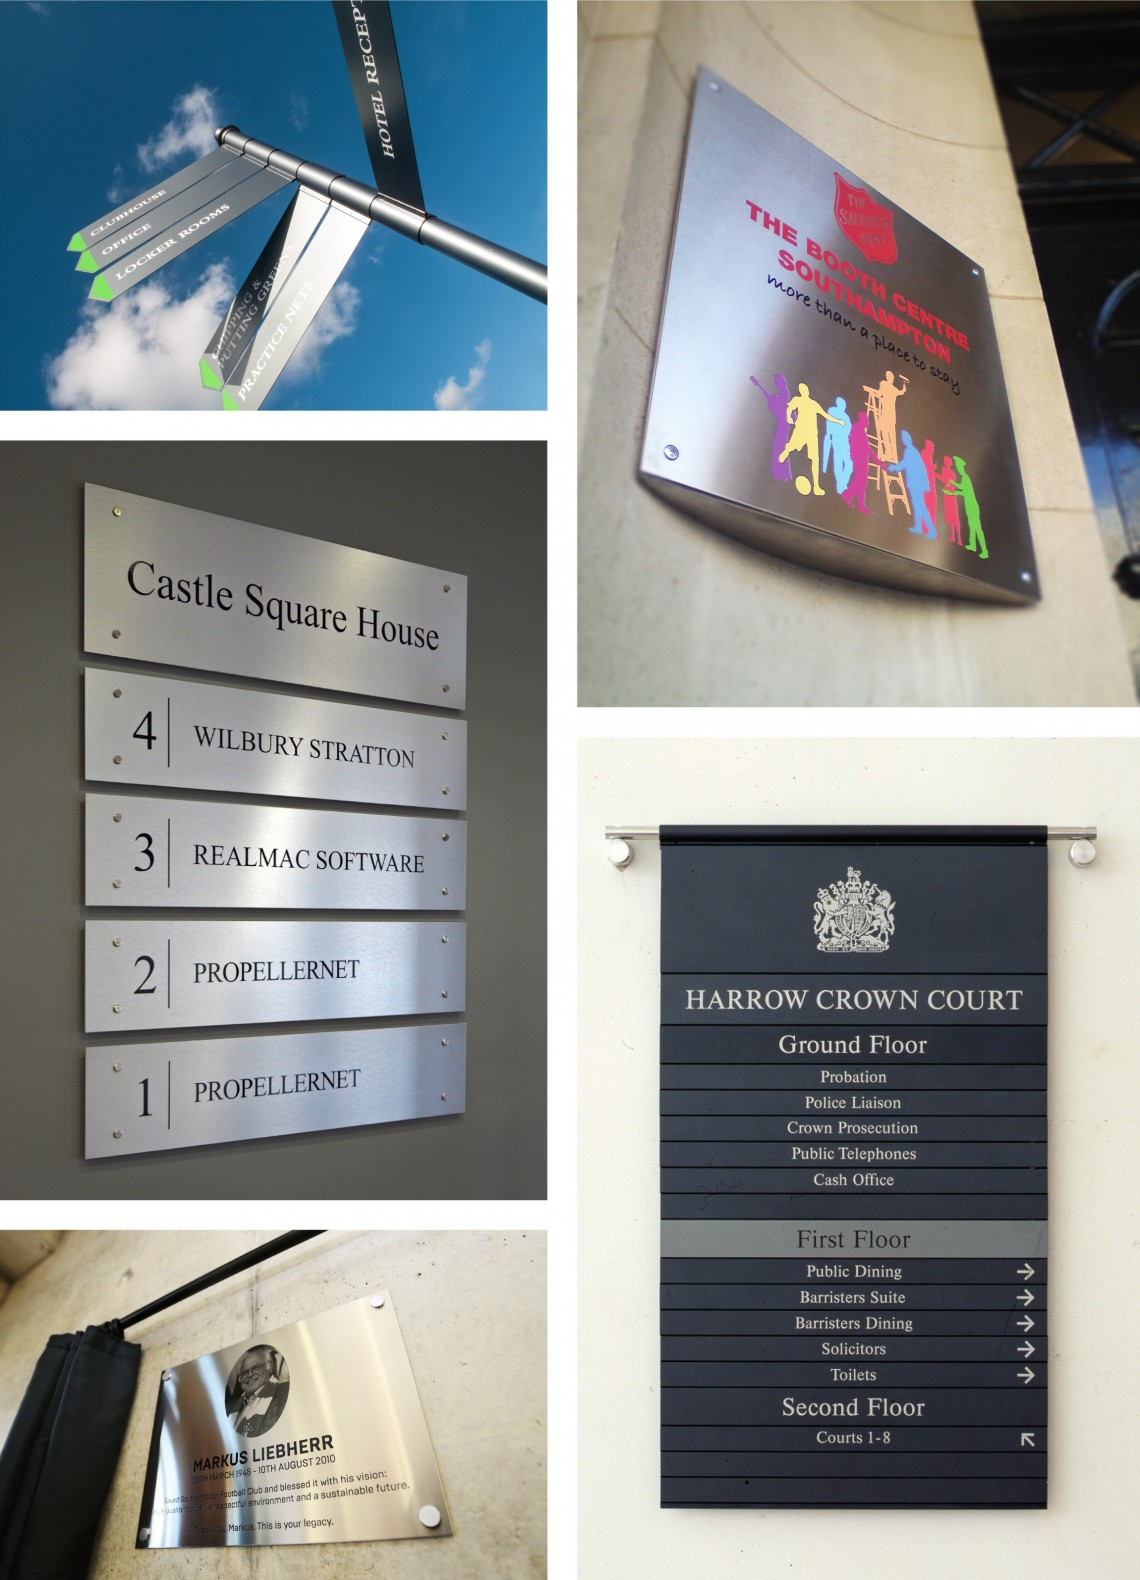 Stainless steel architectural plaque signage and fingerpost way finding sign